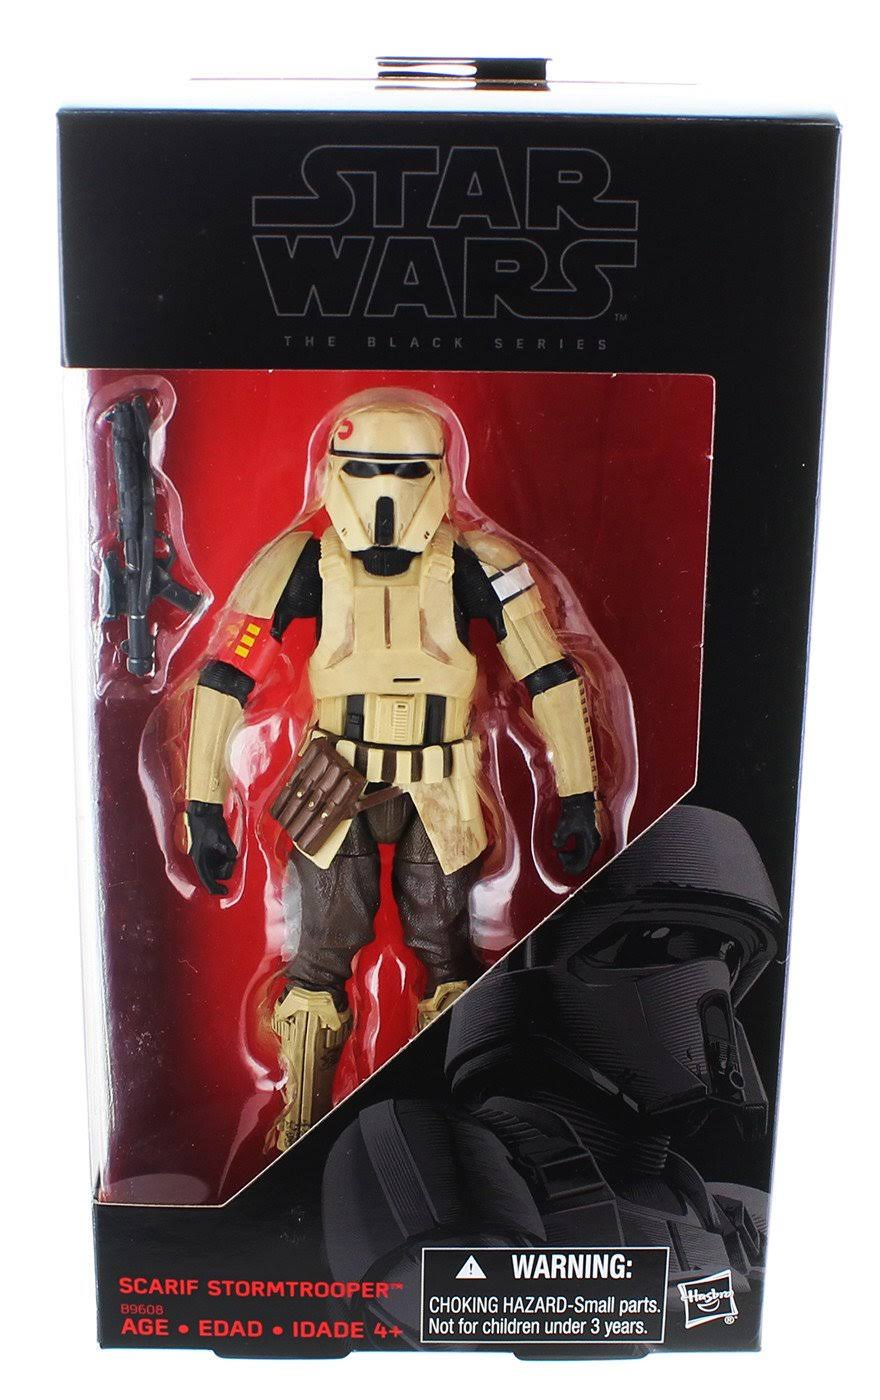 Star Wars The Black Series 6 inch Rogue One Scarif Stormtrooper